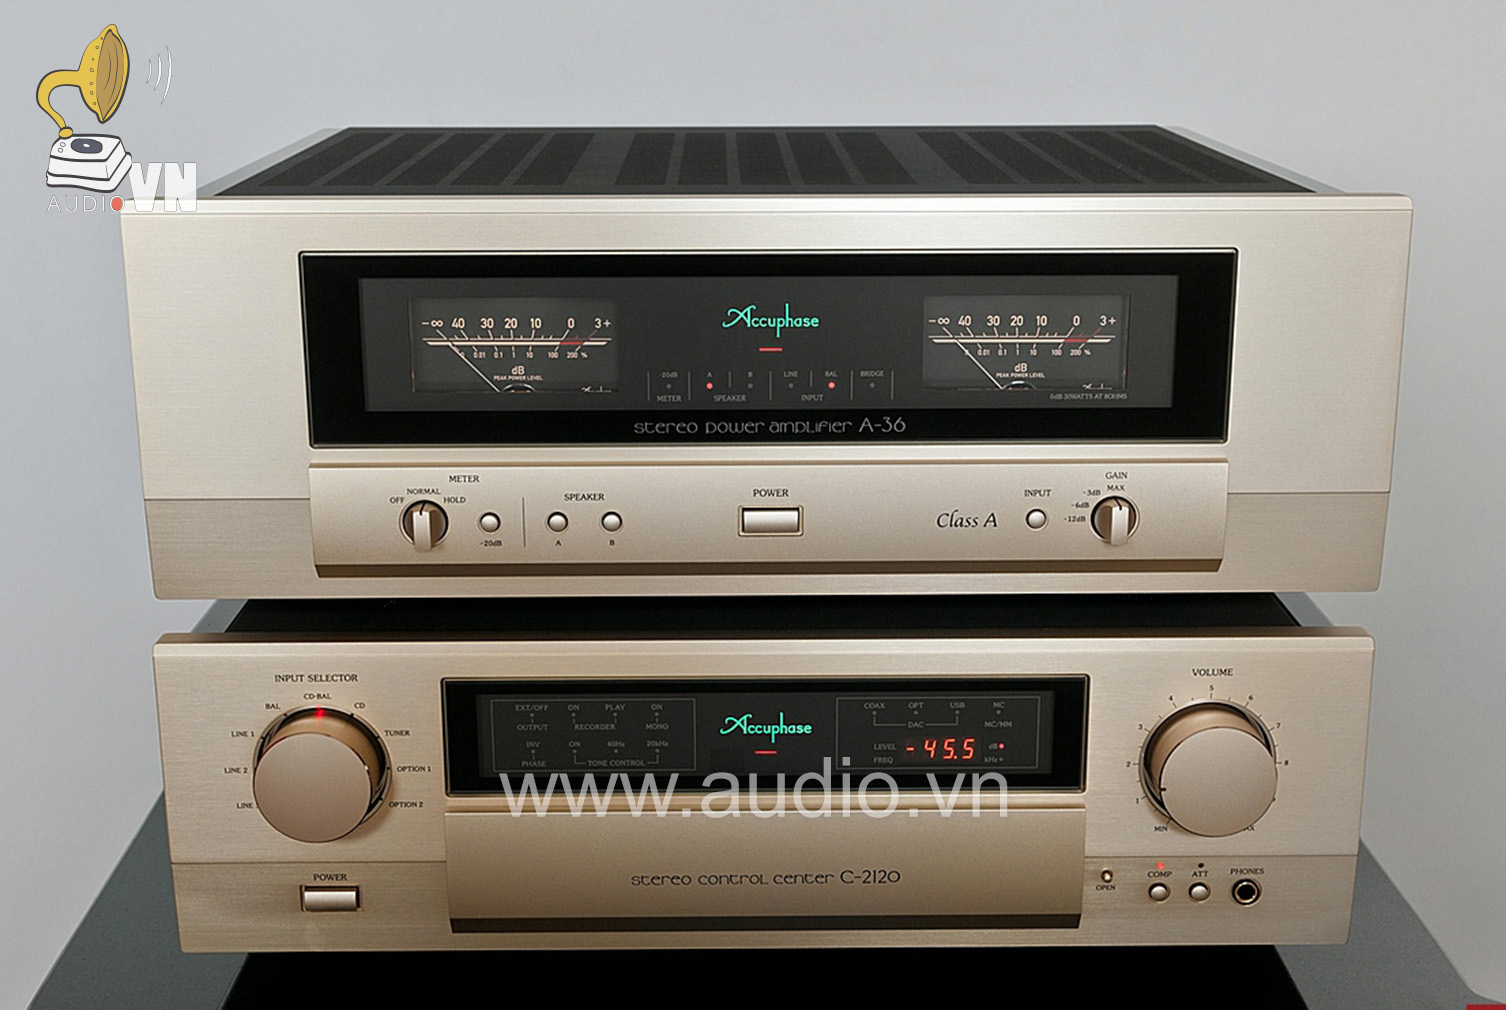 Pre ampli Accuphase C-2120 (2)